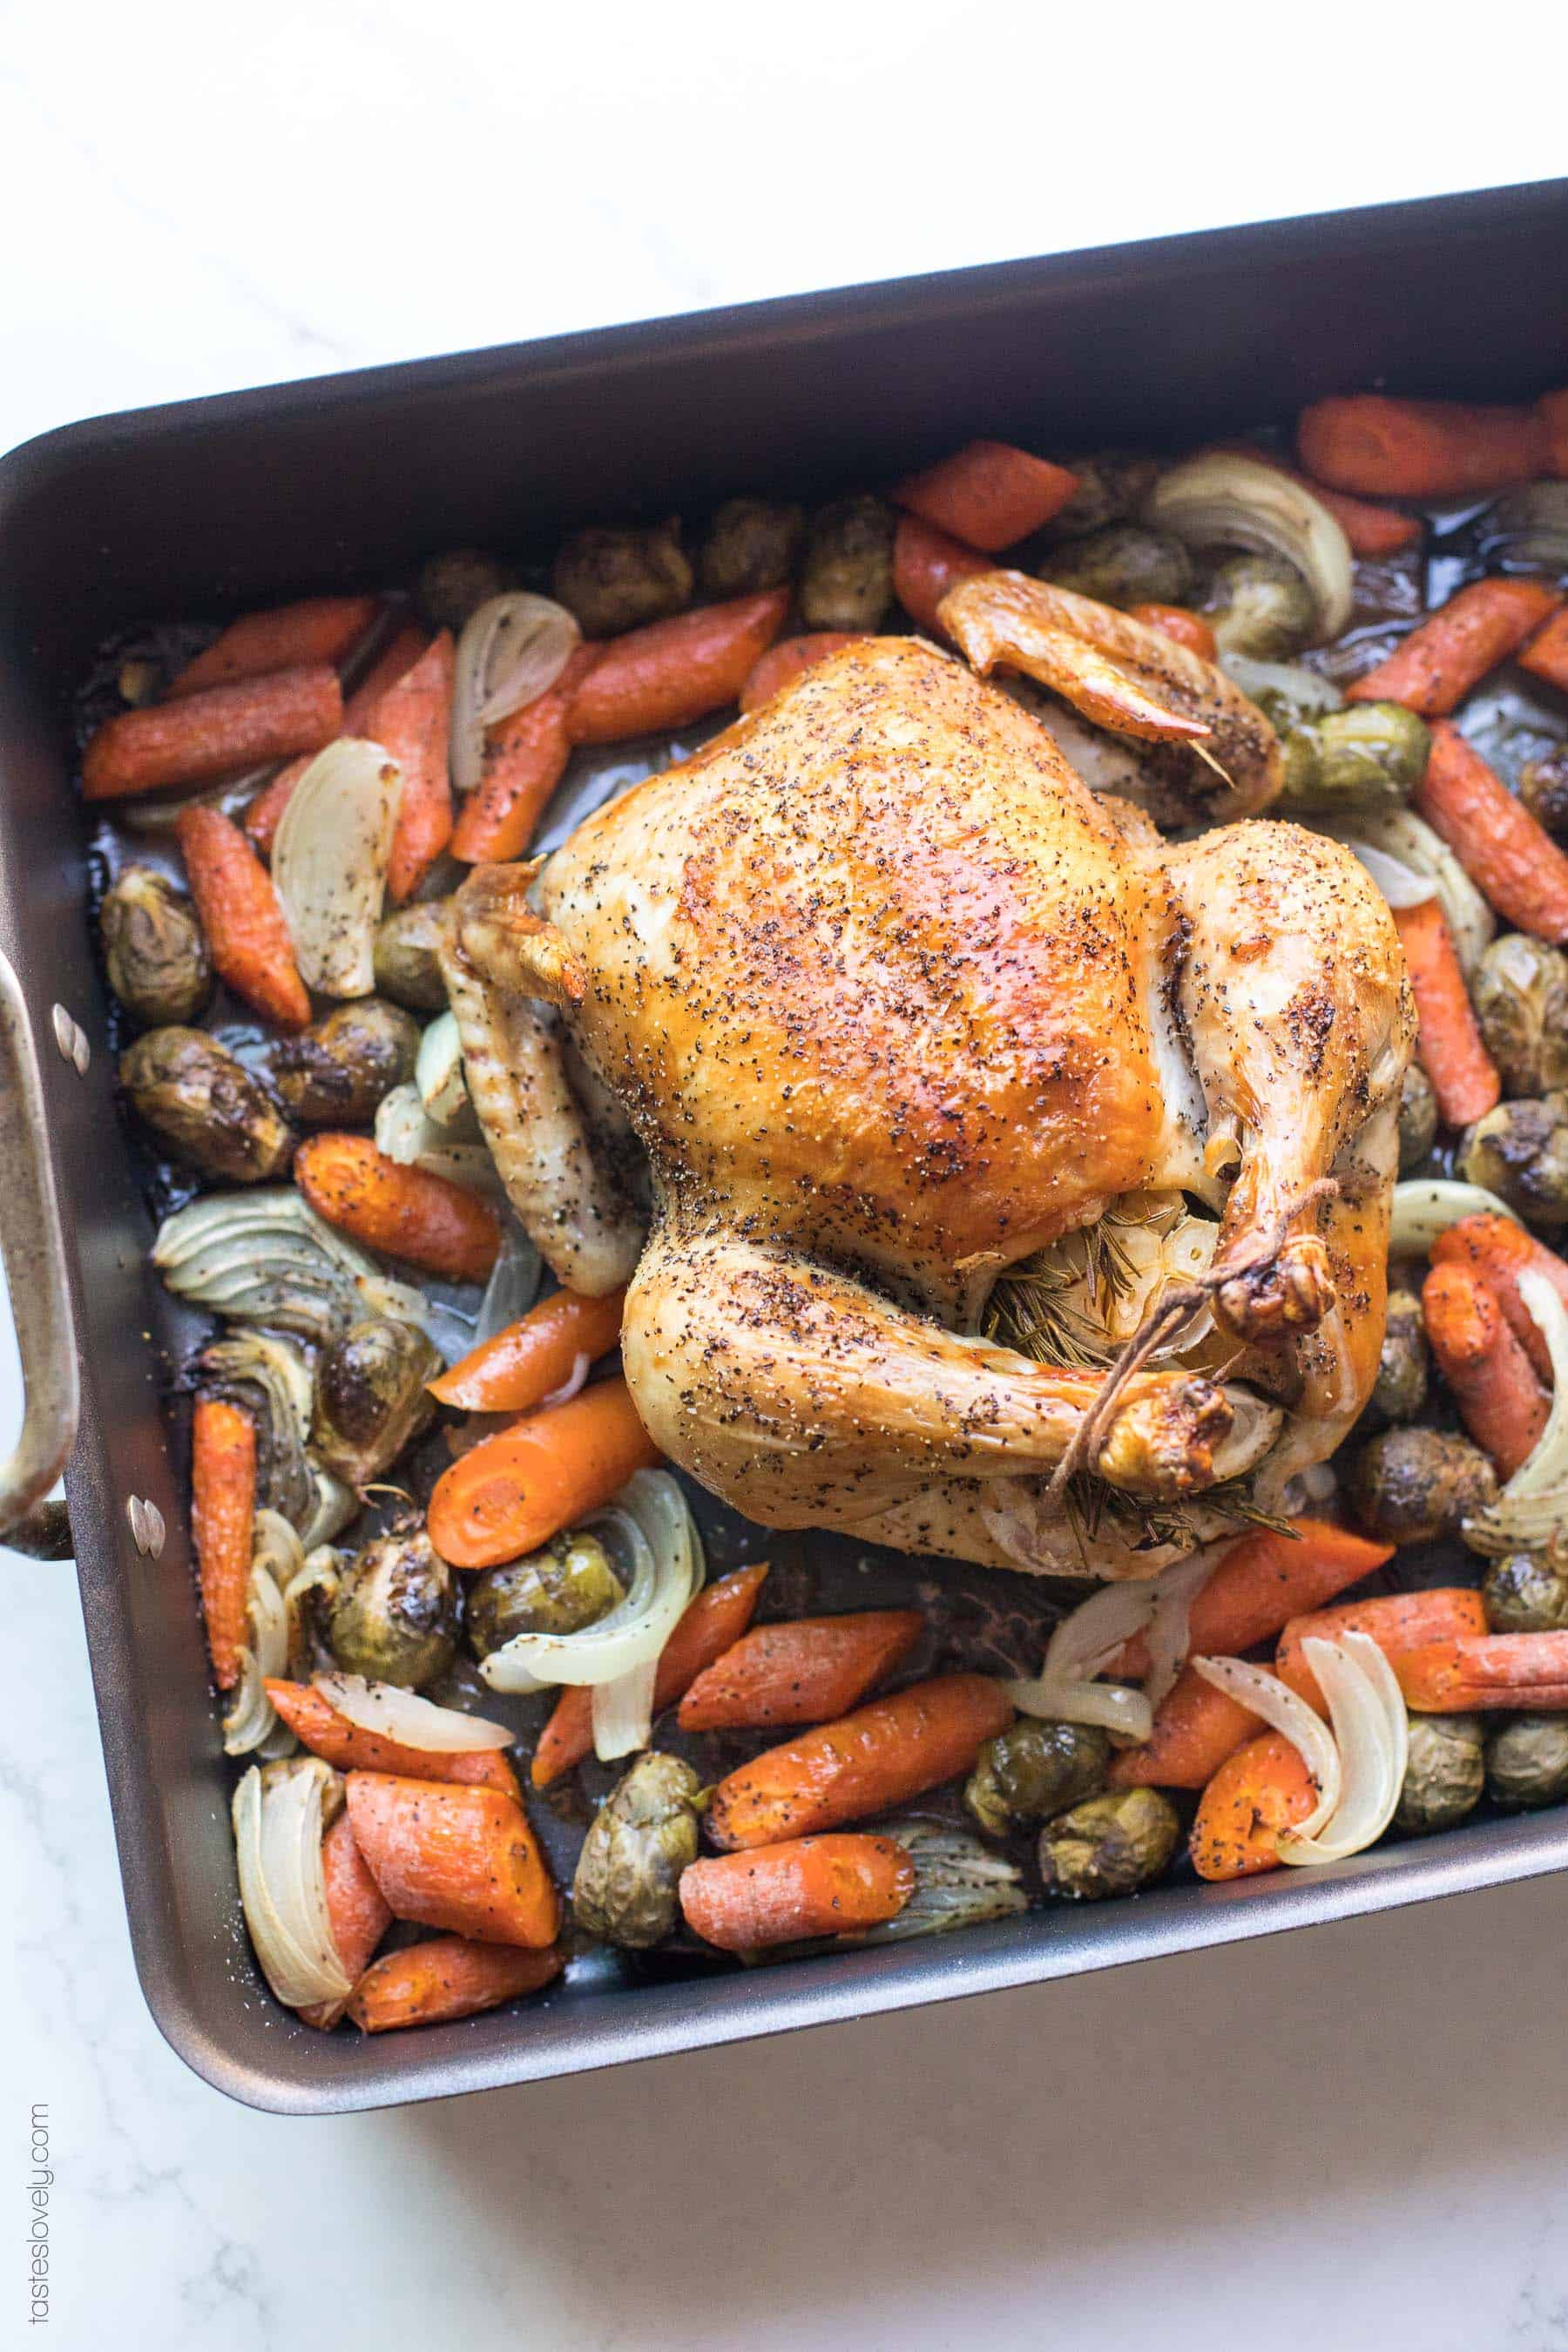 A roast chicken in a roasting pan over root vegetables